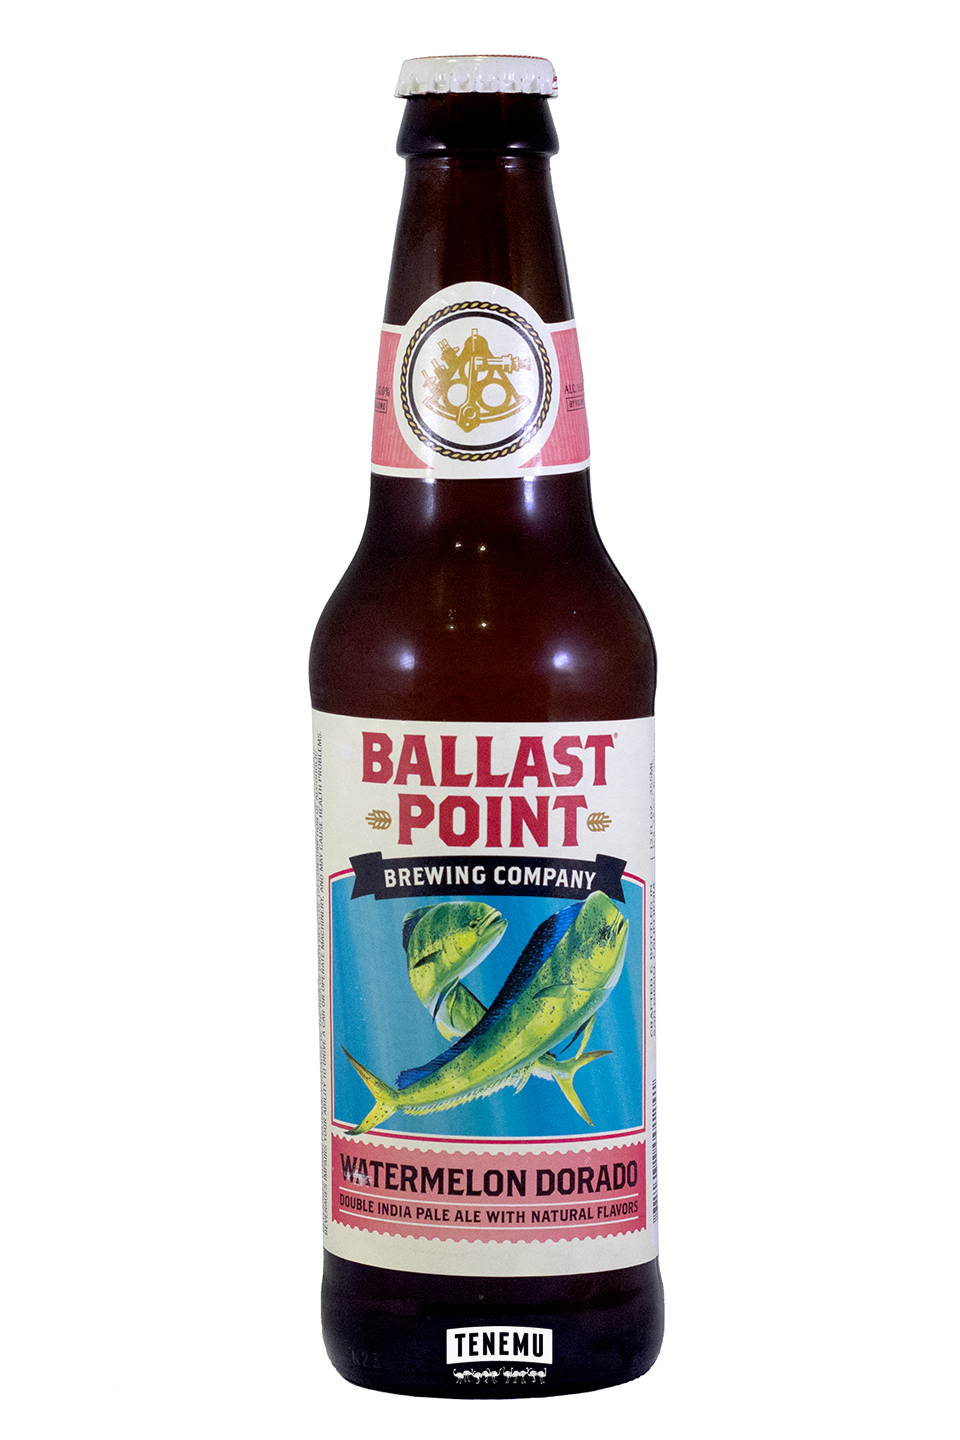 Ballast Point Watermelon Dorado DIPA bottle